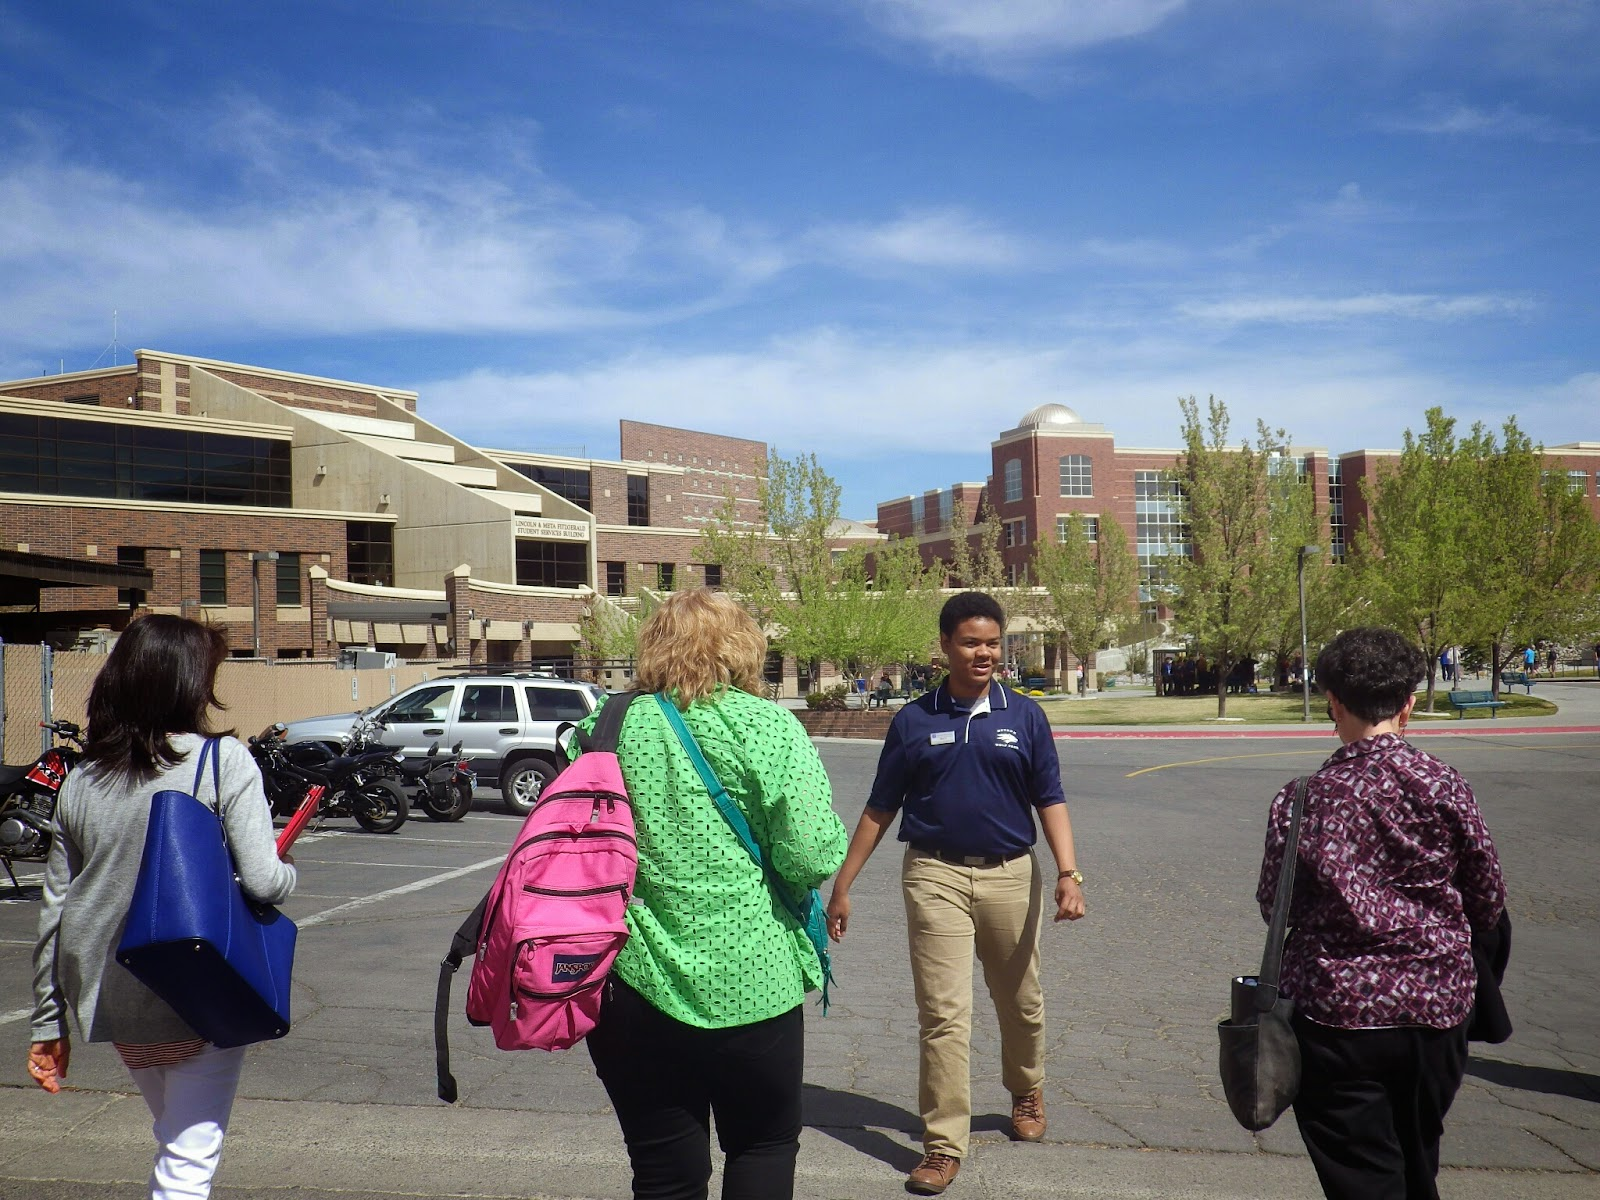 The students we ve met love it here at university of nevada reno pic twitter com 8lr3jjz5lc suhicounseling suhicounseling april 11 2014